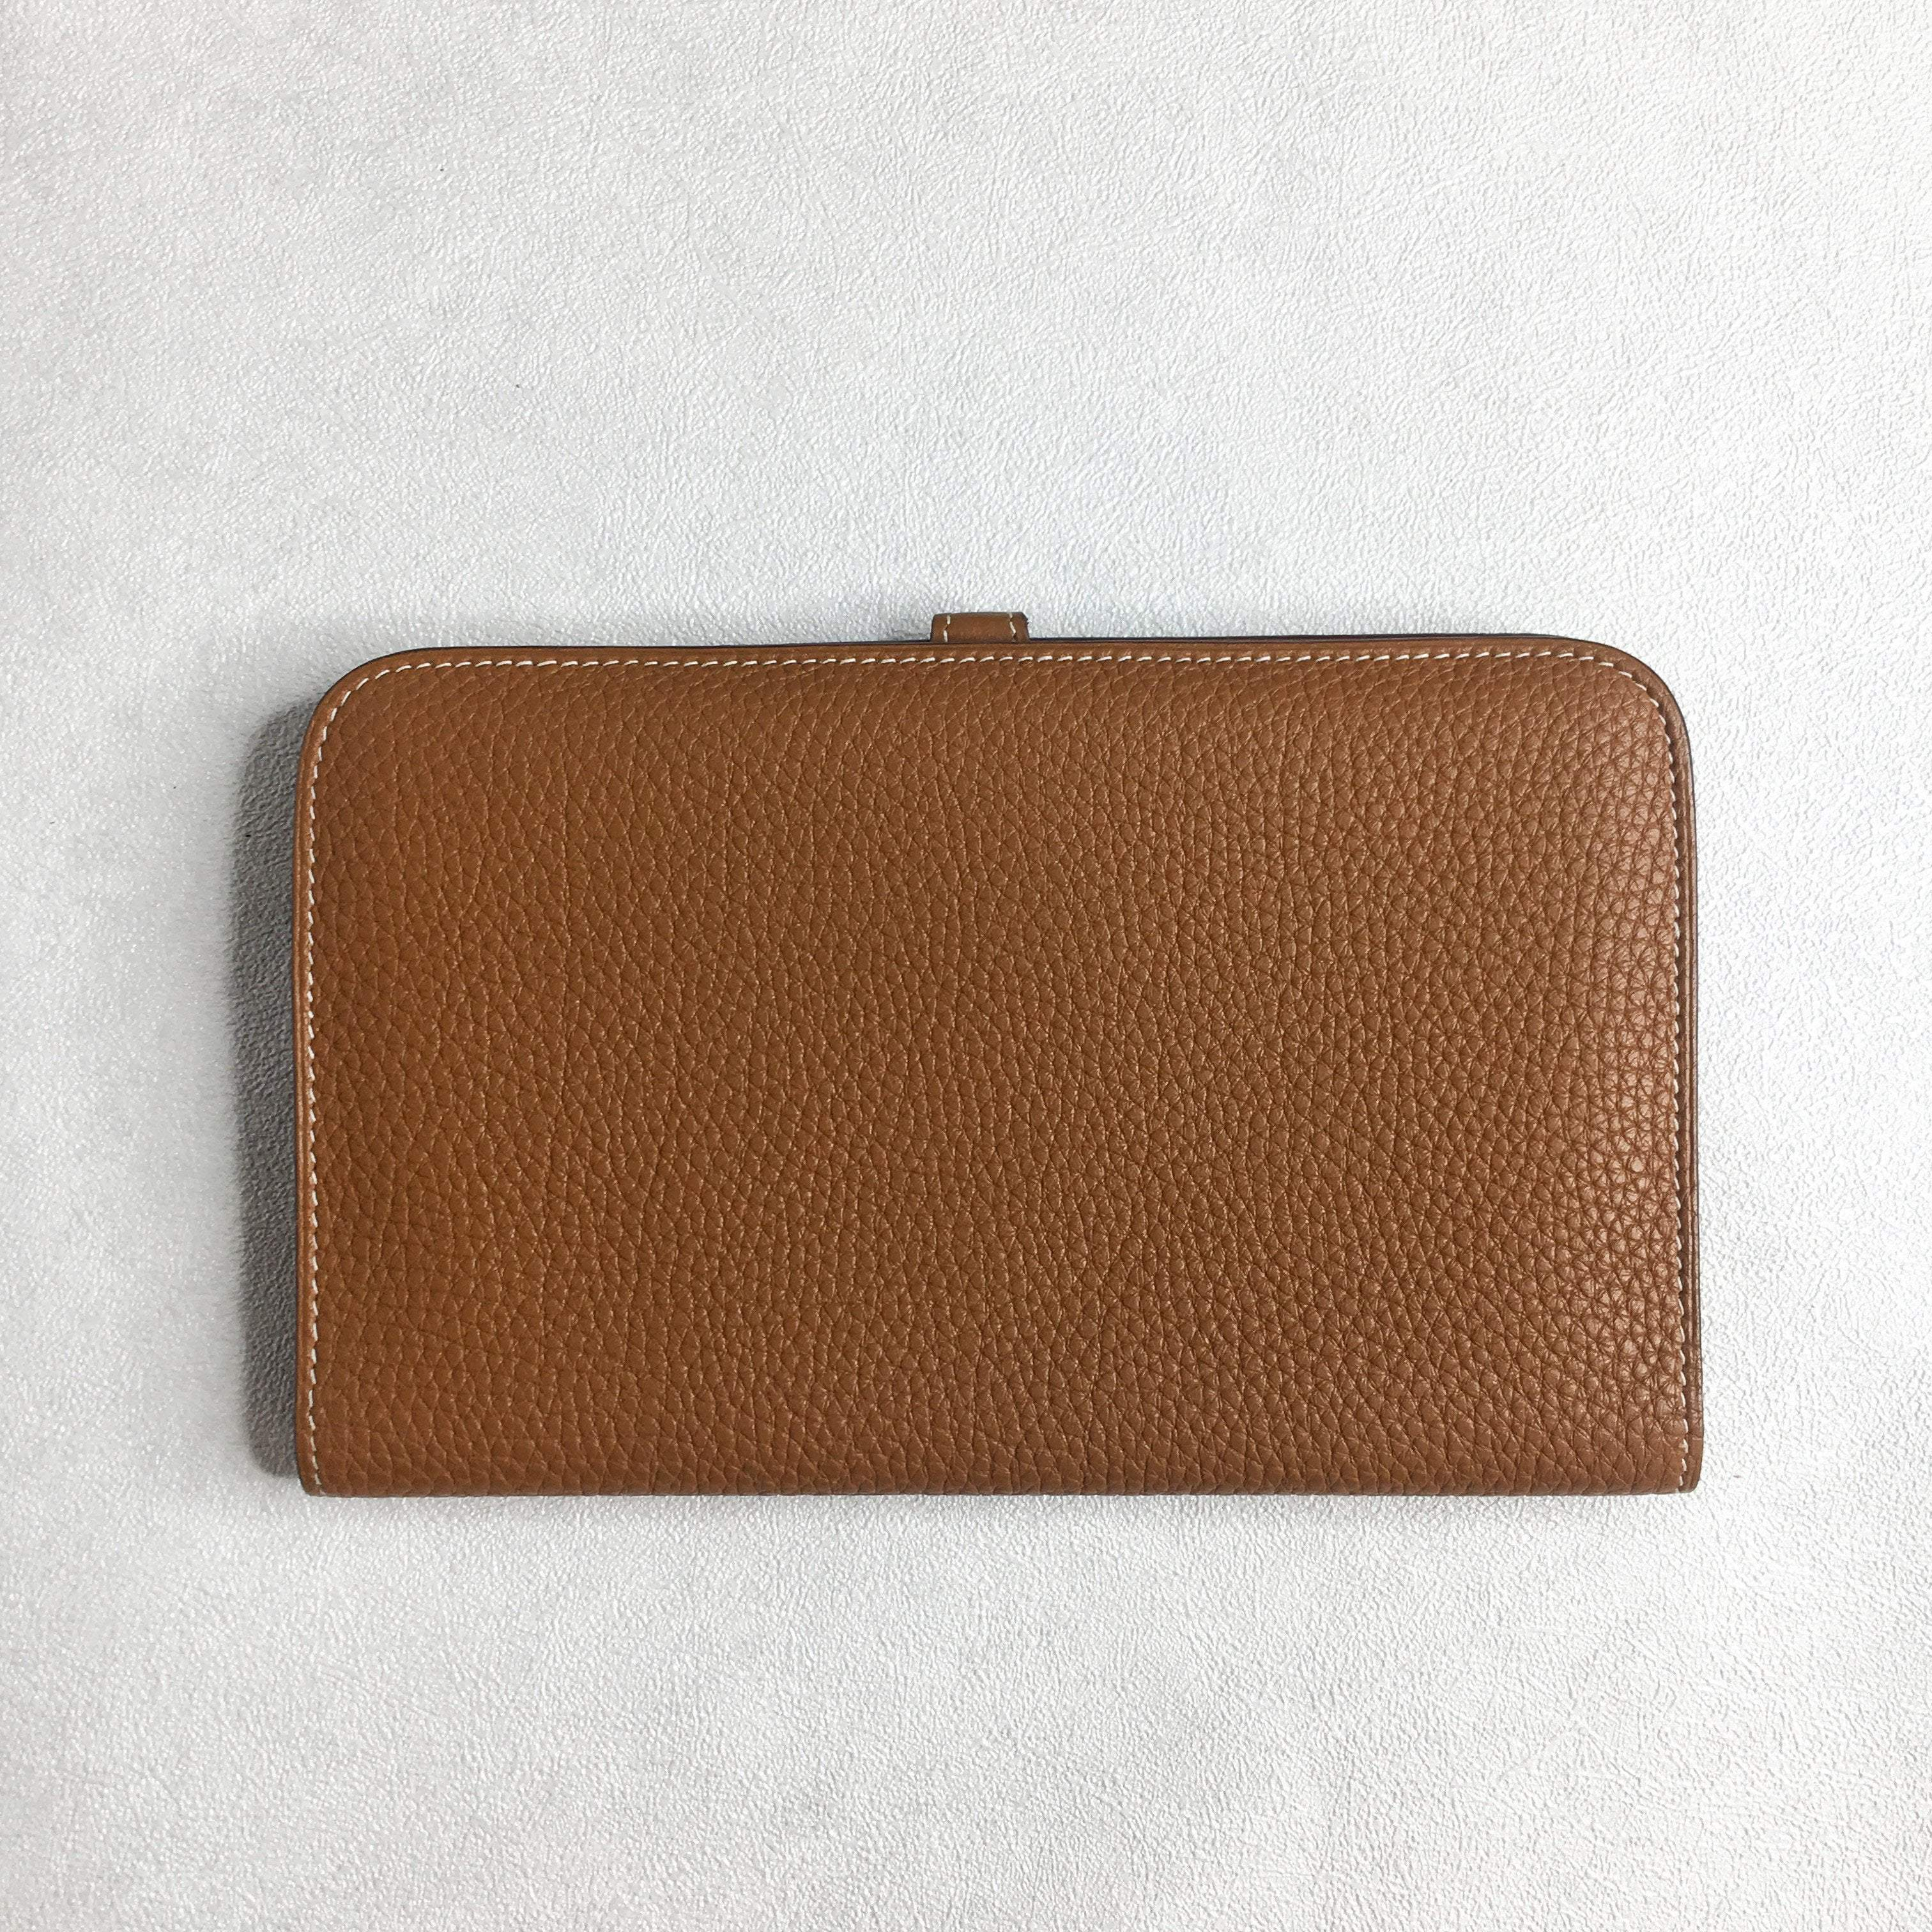 Hermes Dogon Togo Leather Brown Wallet